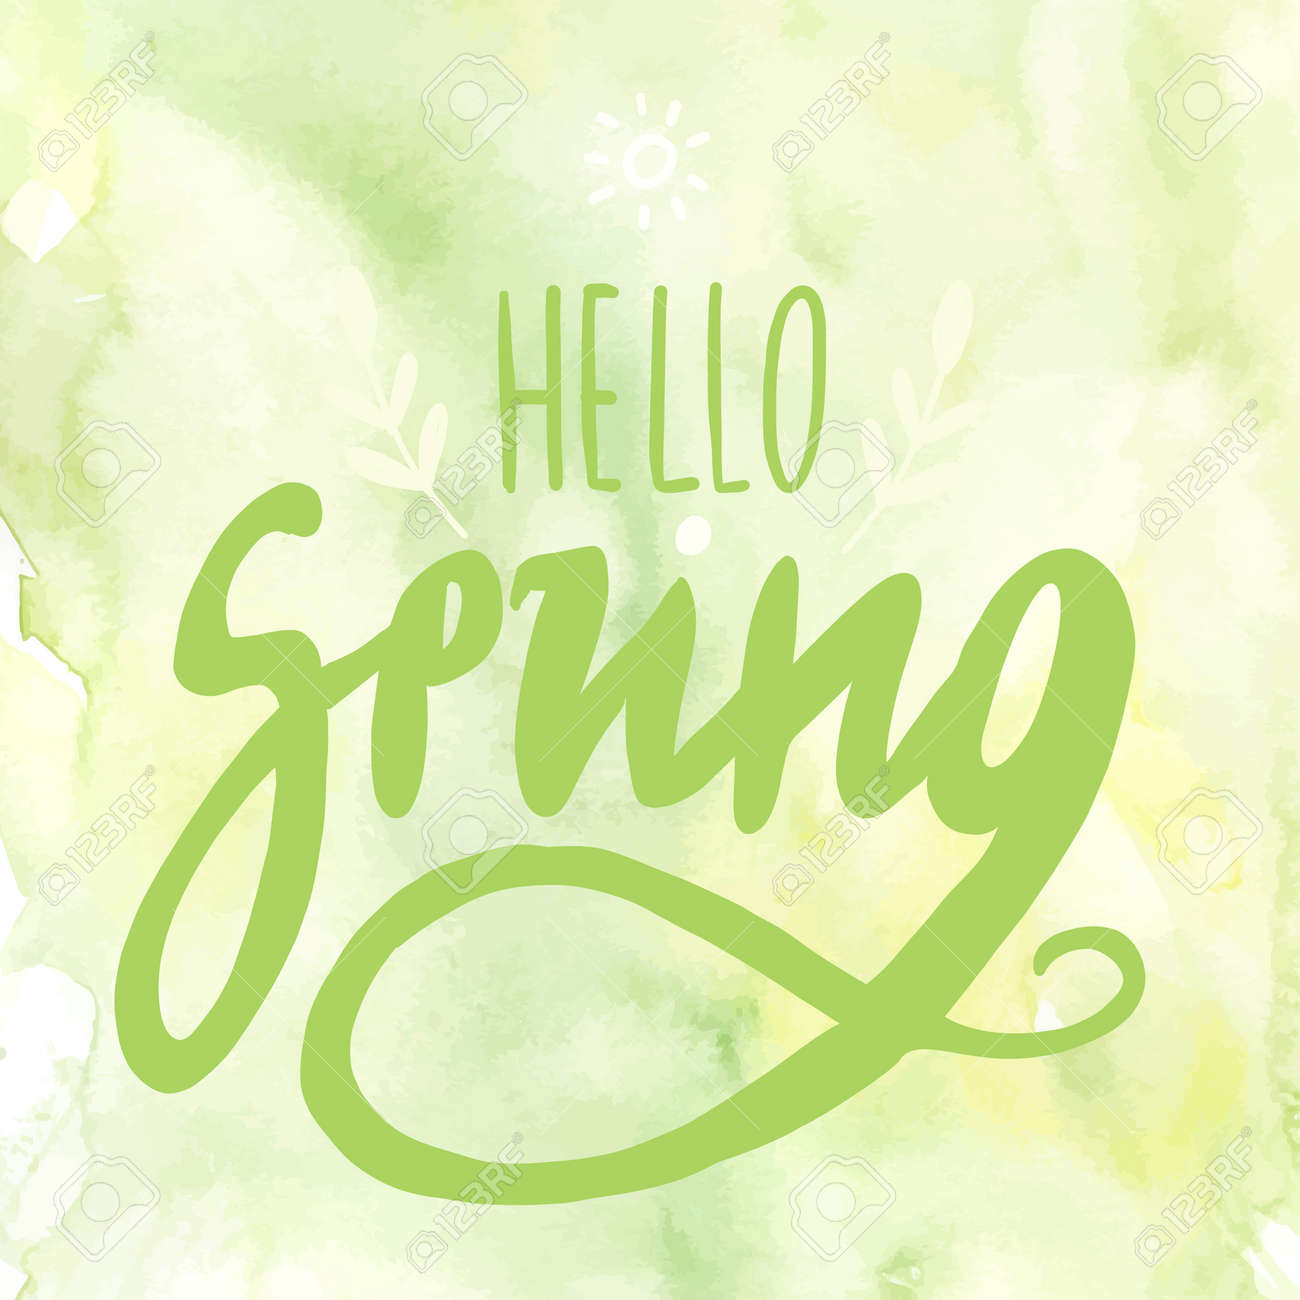 Hello Spring Digital Lettering For Promotion With Flourishes